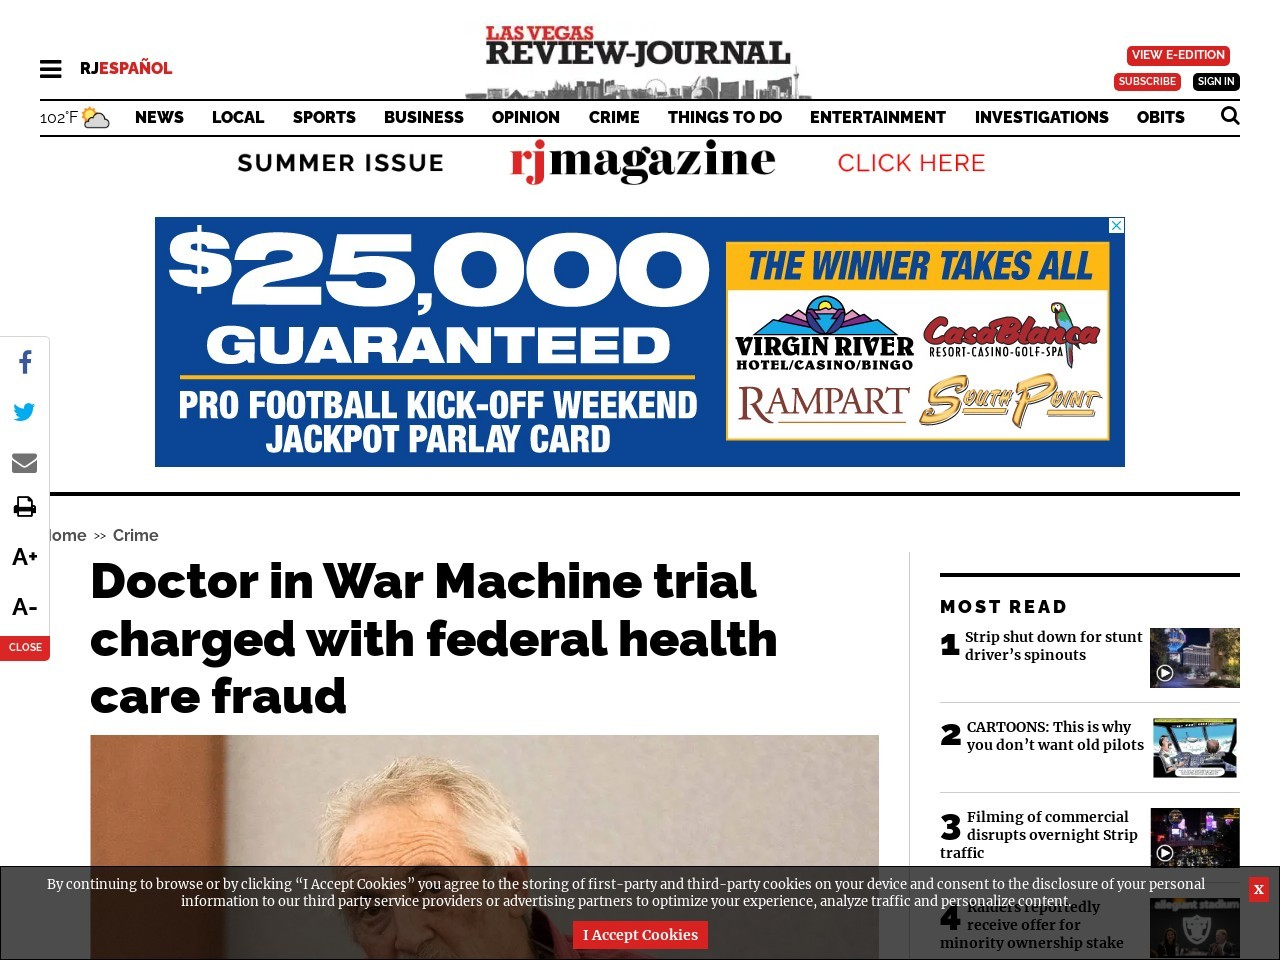 Doctor in War Machine trial charged with federal health care fraud